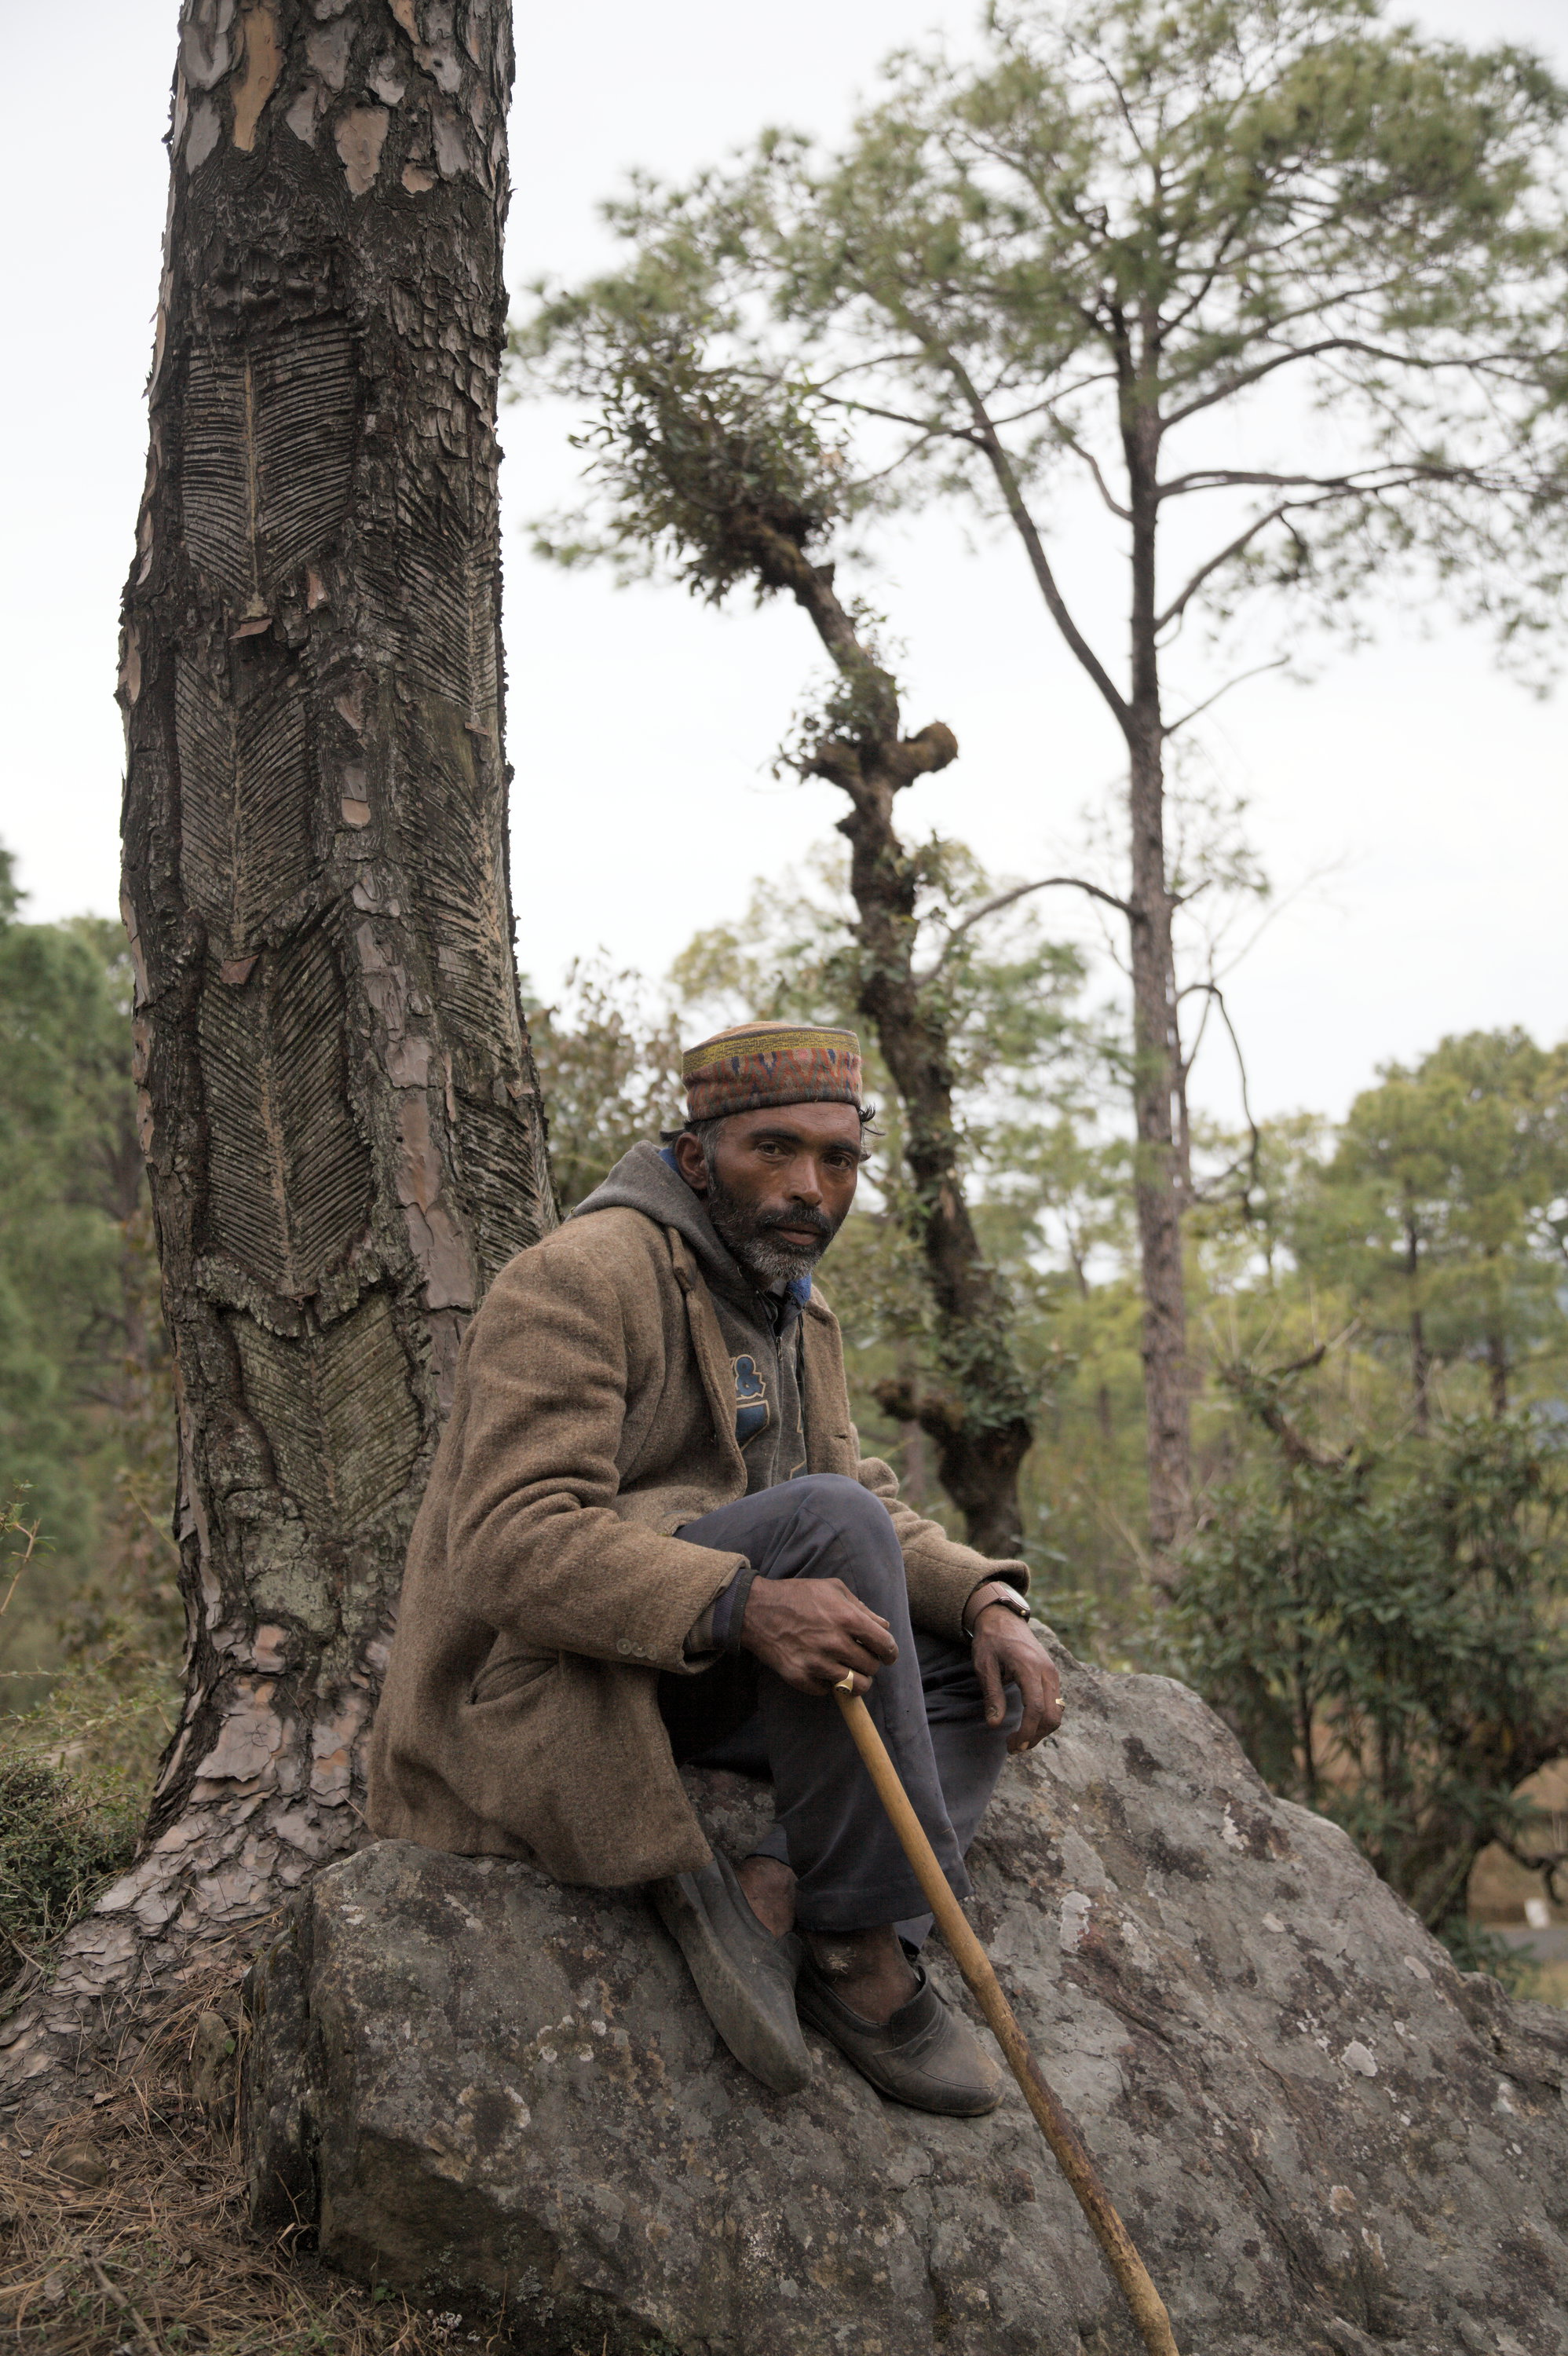 Arjun's workman resting on a rock in the forest. Gaddis work in groups as they need to protect their flocks from bears, leopards and human gangs of thieves.